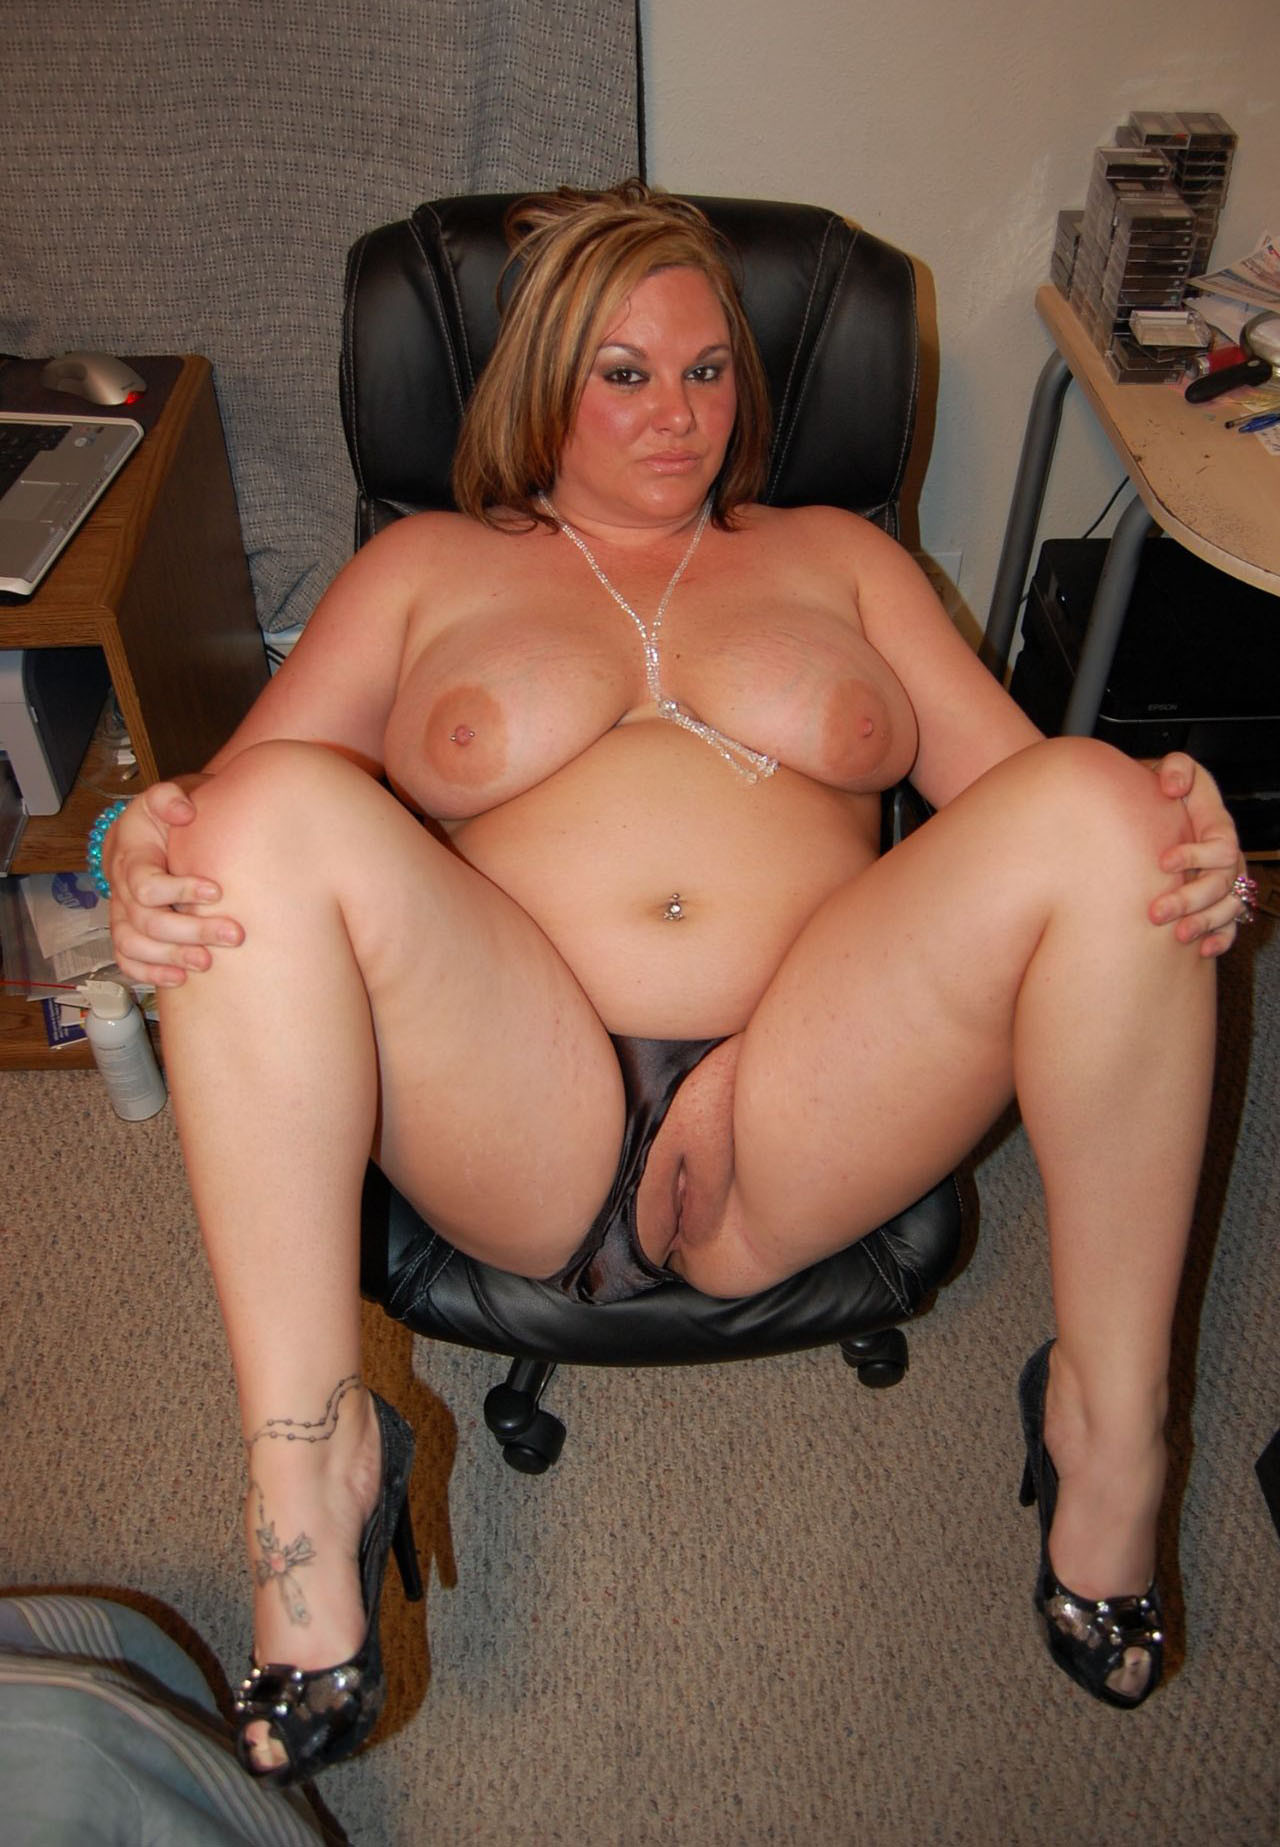 bbw mature milf cougar-xxx video hot porn